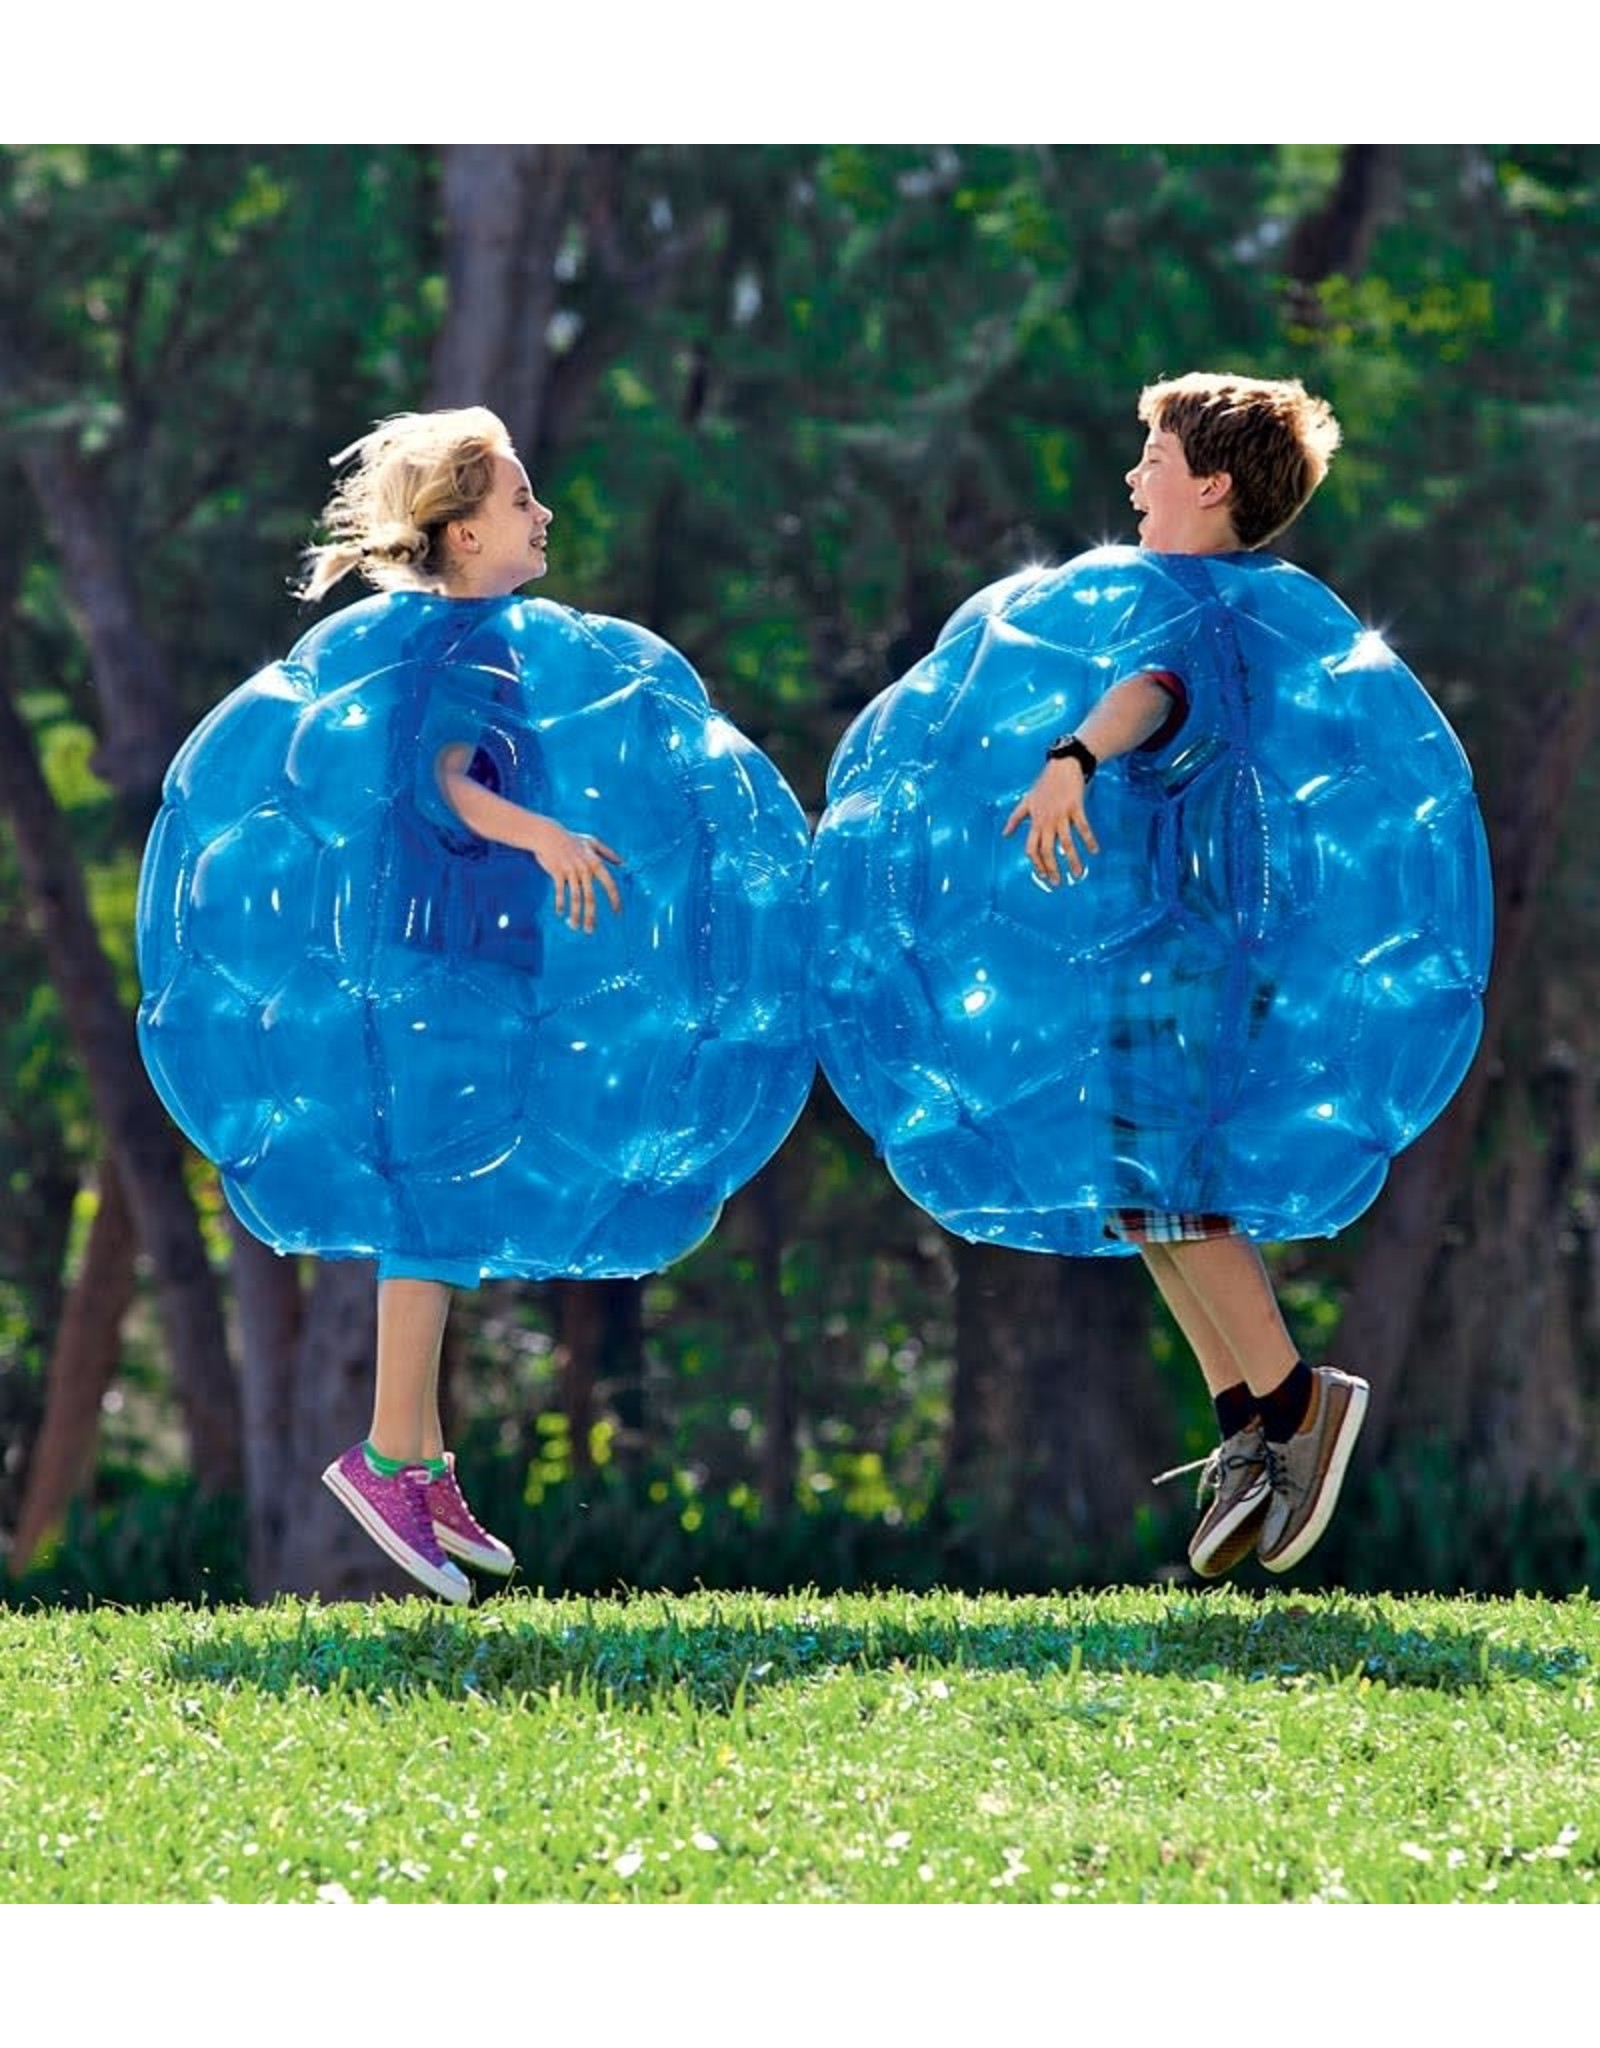 HearthSong Blue Inflatable Buddy Bumper Balls, Set of 2